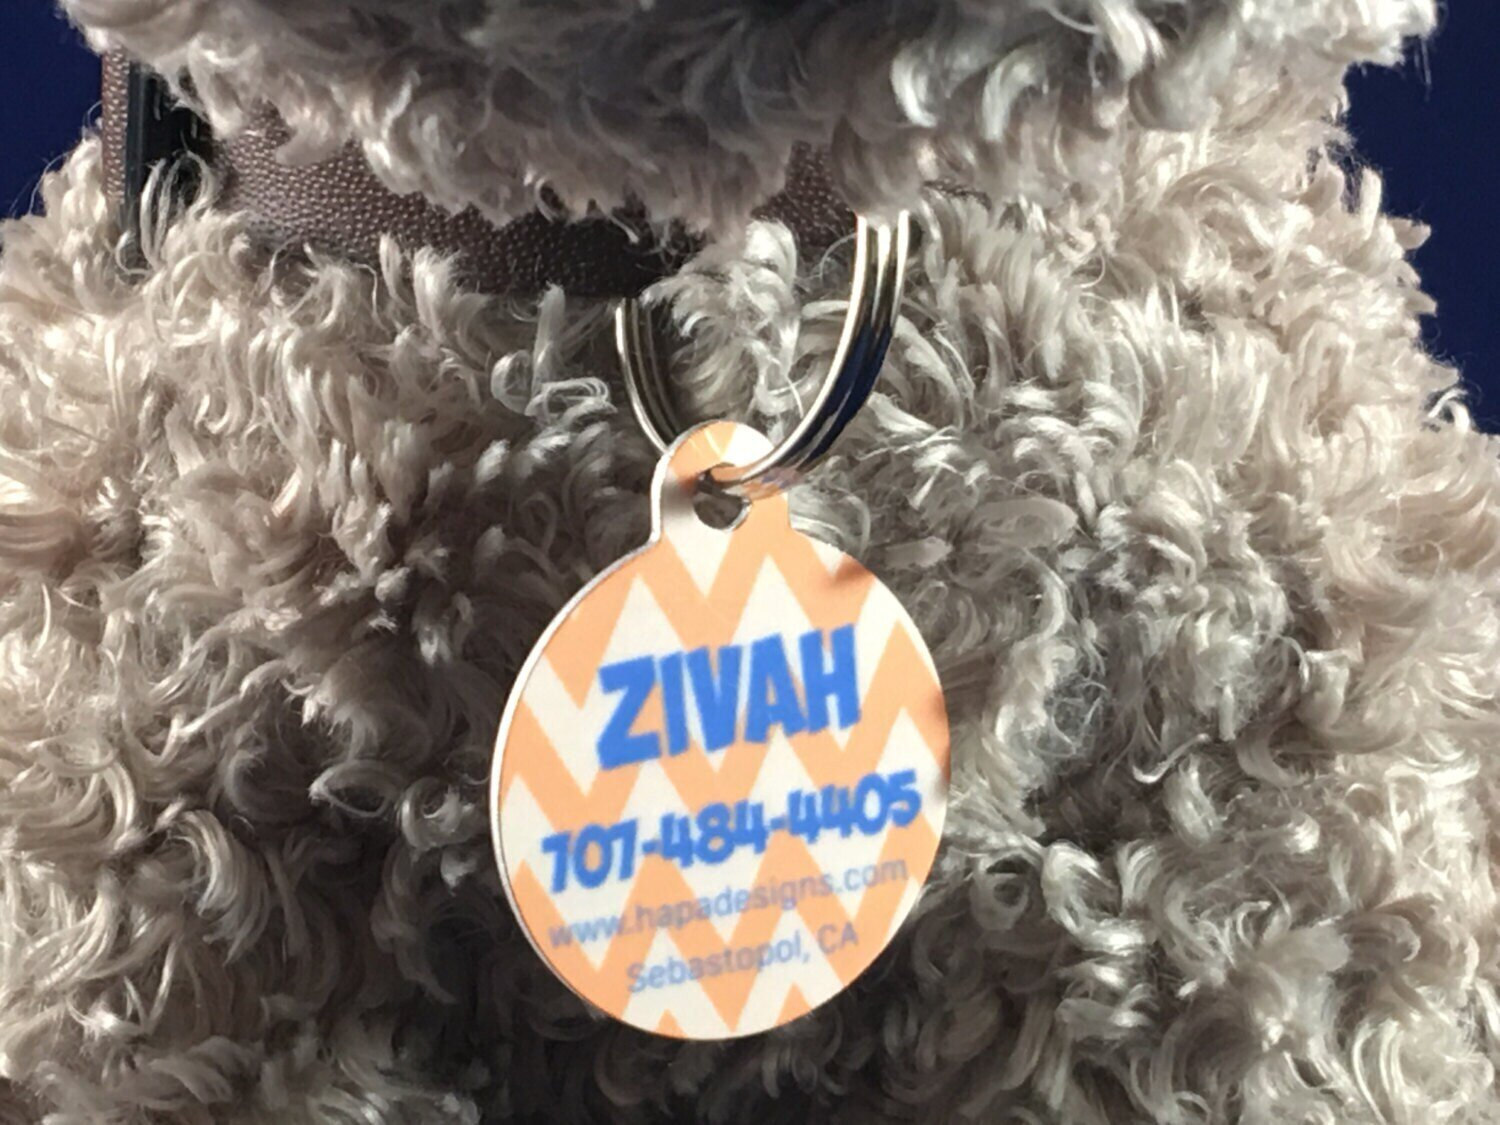 Customized Photo Pet Tag - Dog Cat Pets ID Tags Dye Sublimation! 100% Satisfaction! FREE SS split ring! Personalized pet's image